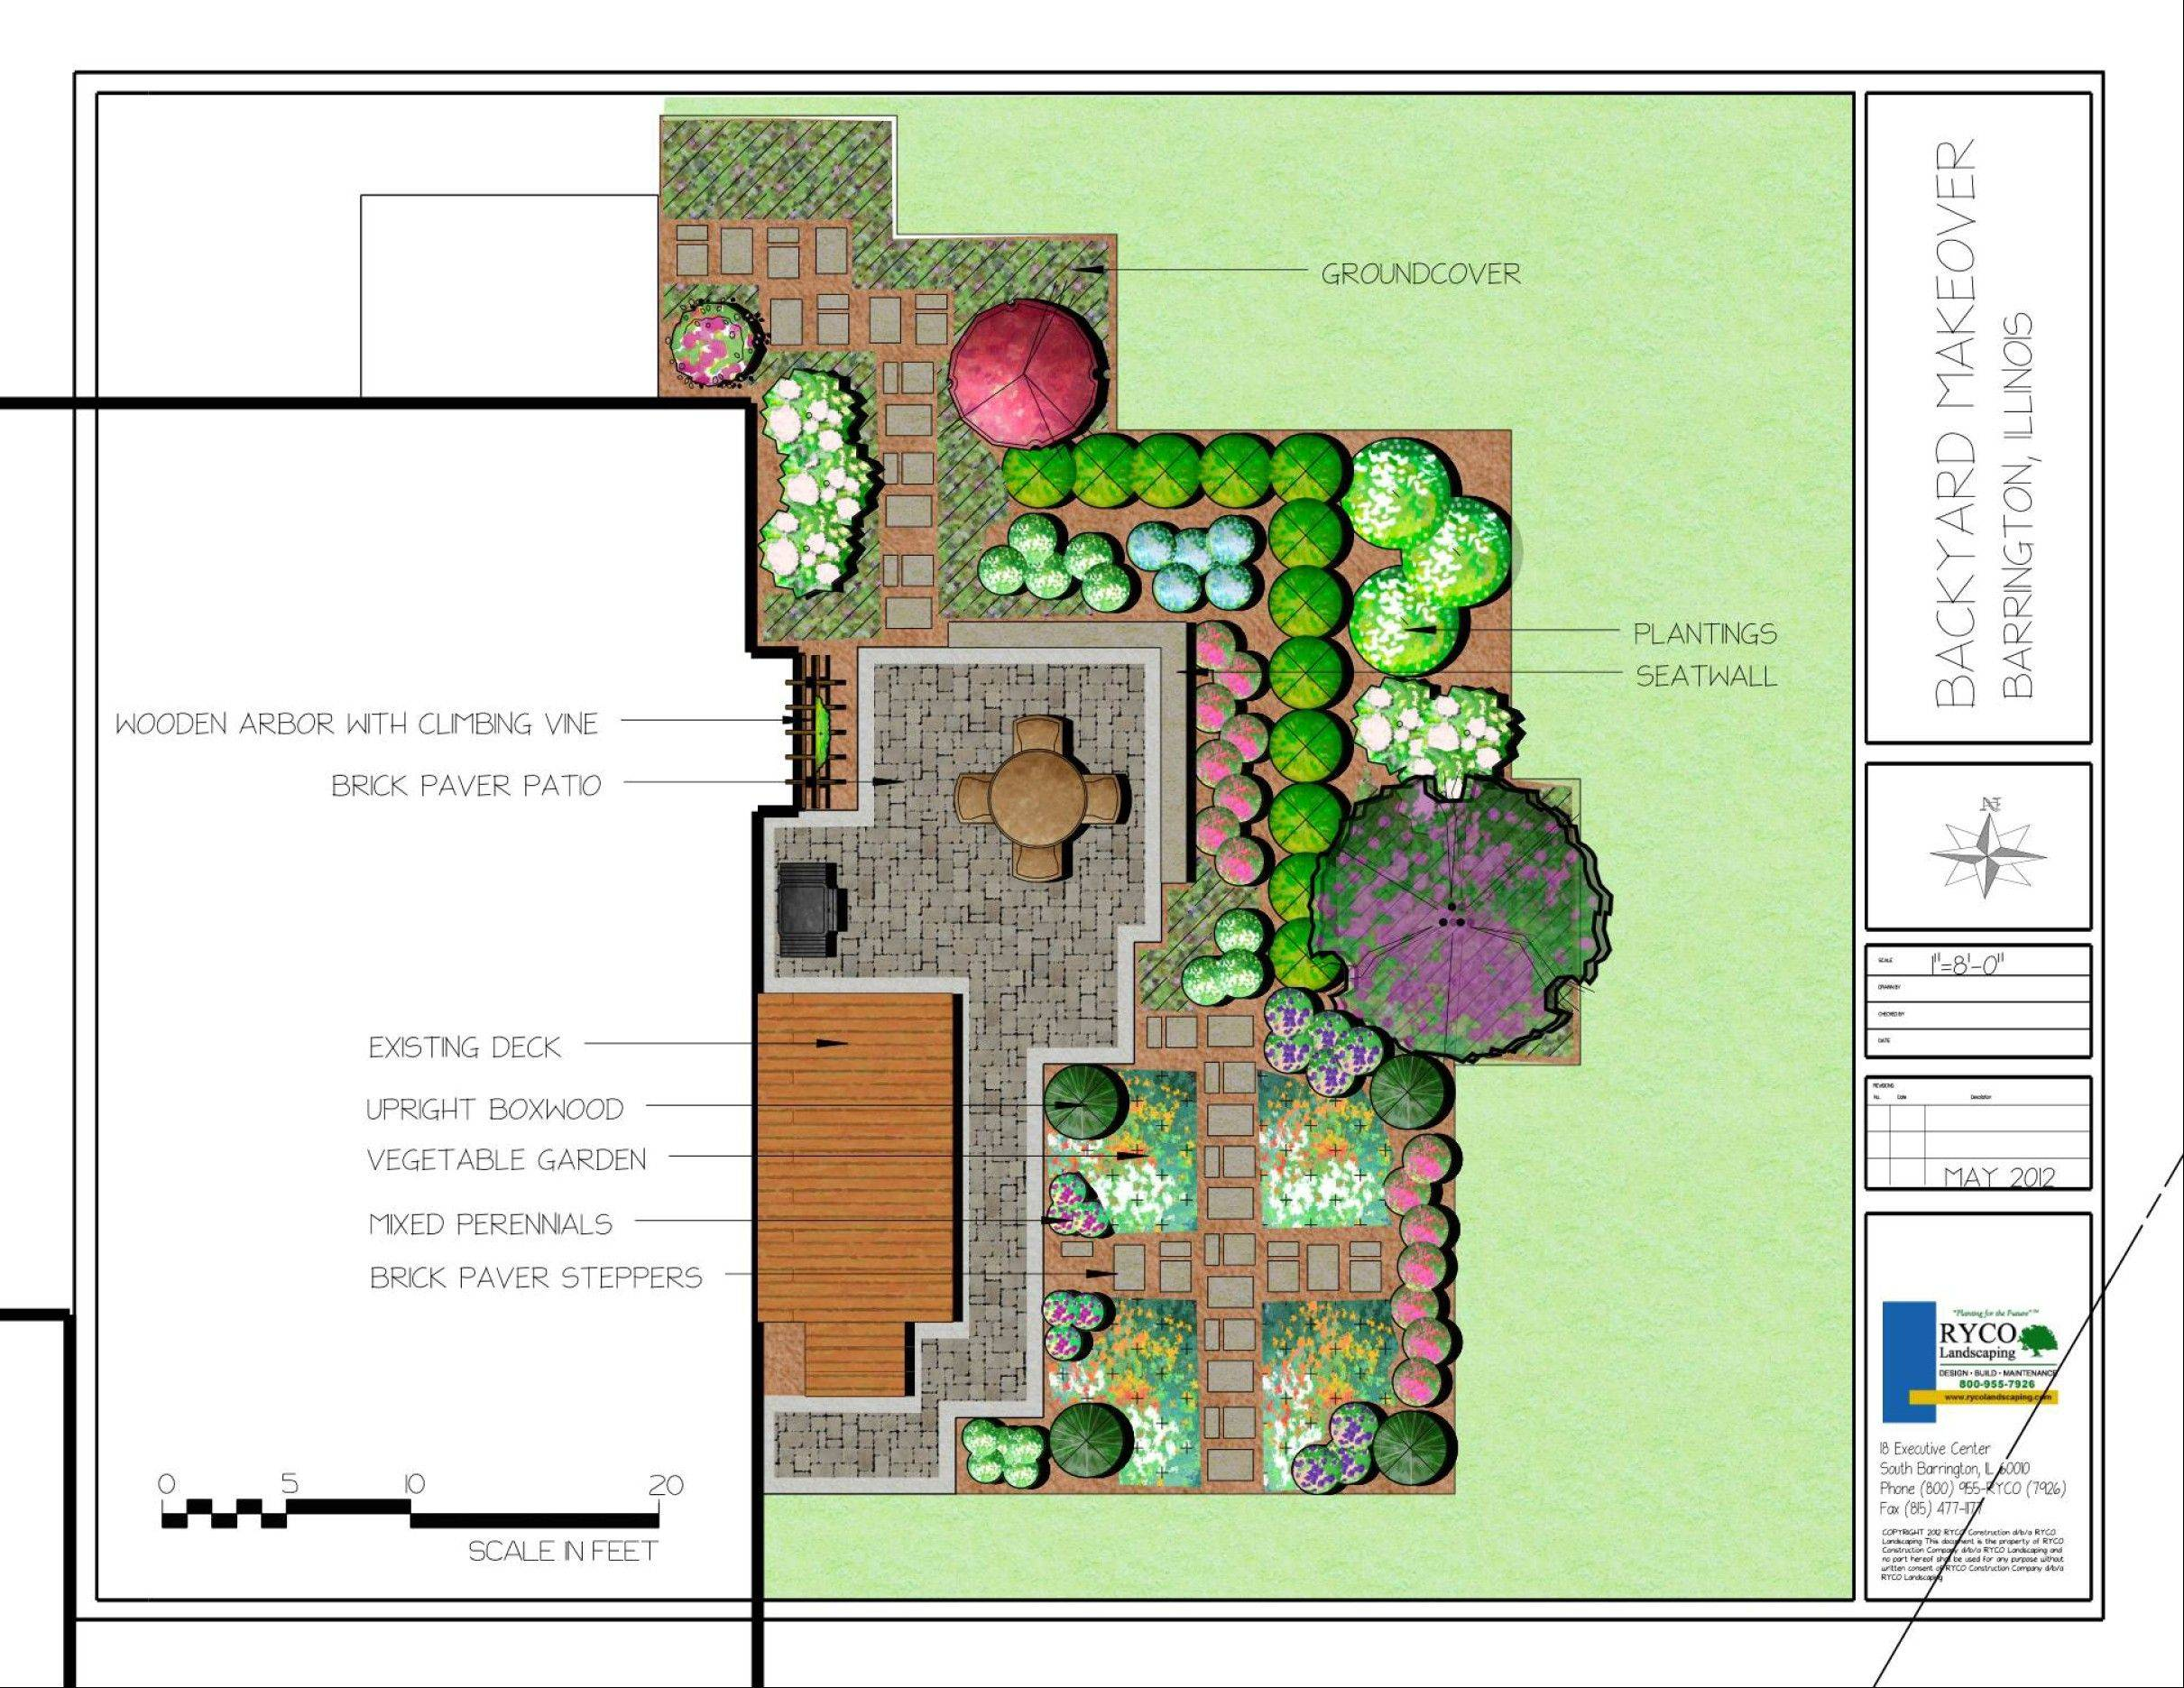 The RYCO Landscaping makeover plan involves installing a Belgard patio and seat wall, along wiht lush ground cover and pavers-as-steppingstones.